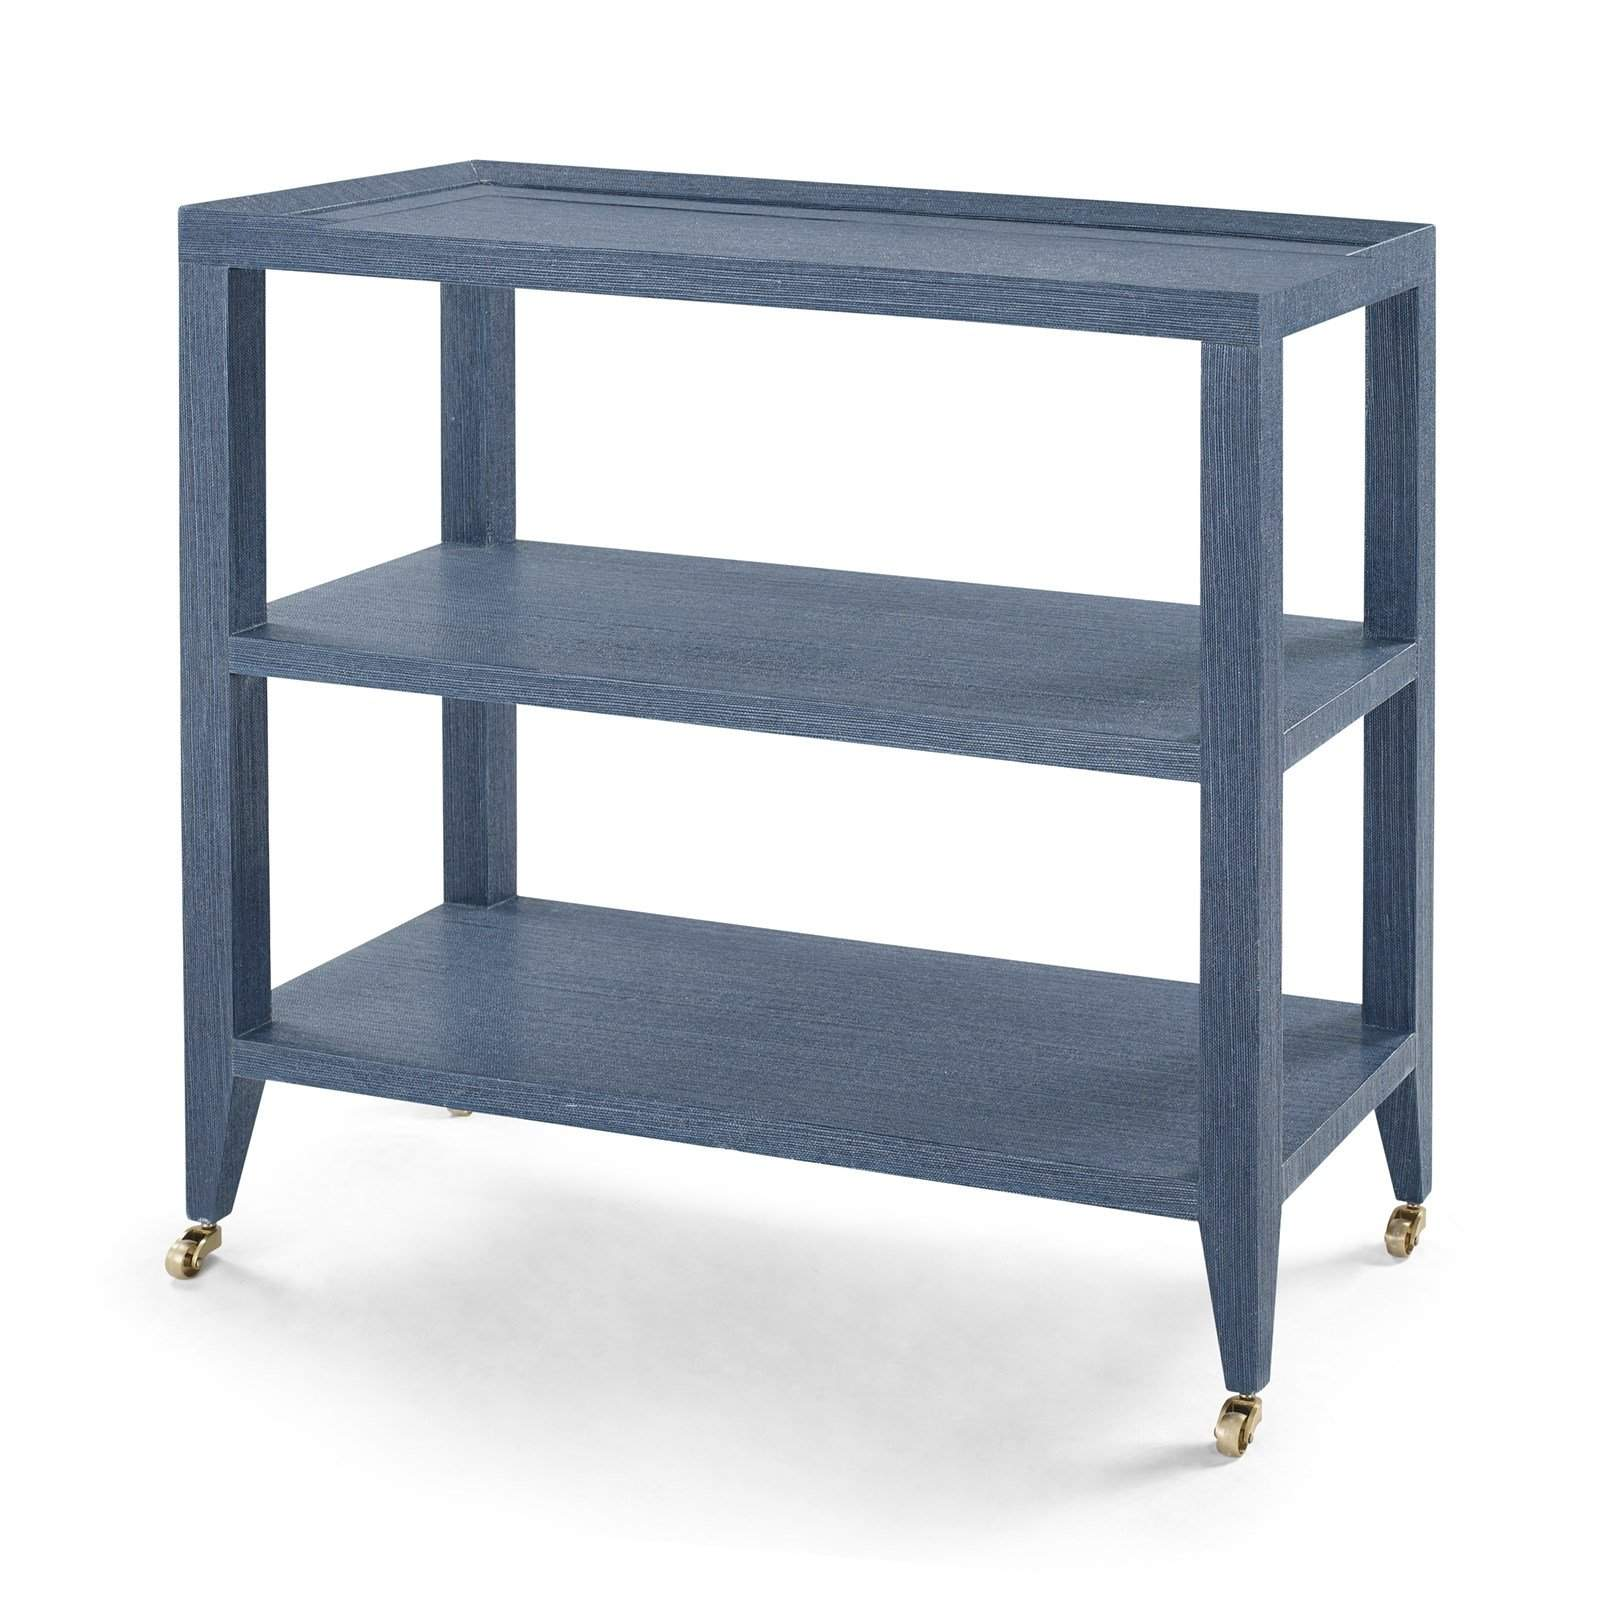 Bungalow 5 - ISADORA CONSOLE TABLE in NAVY BLUE